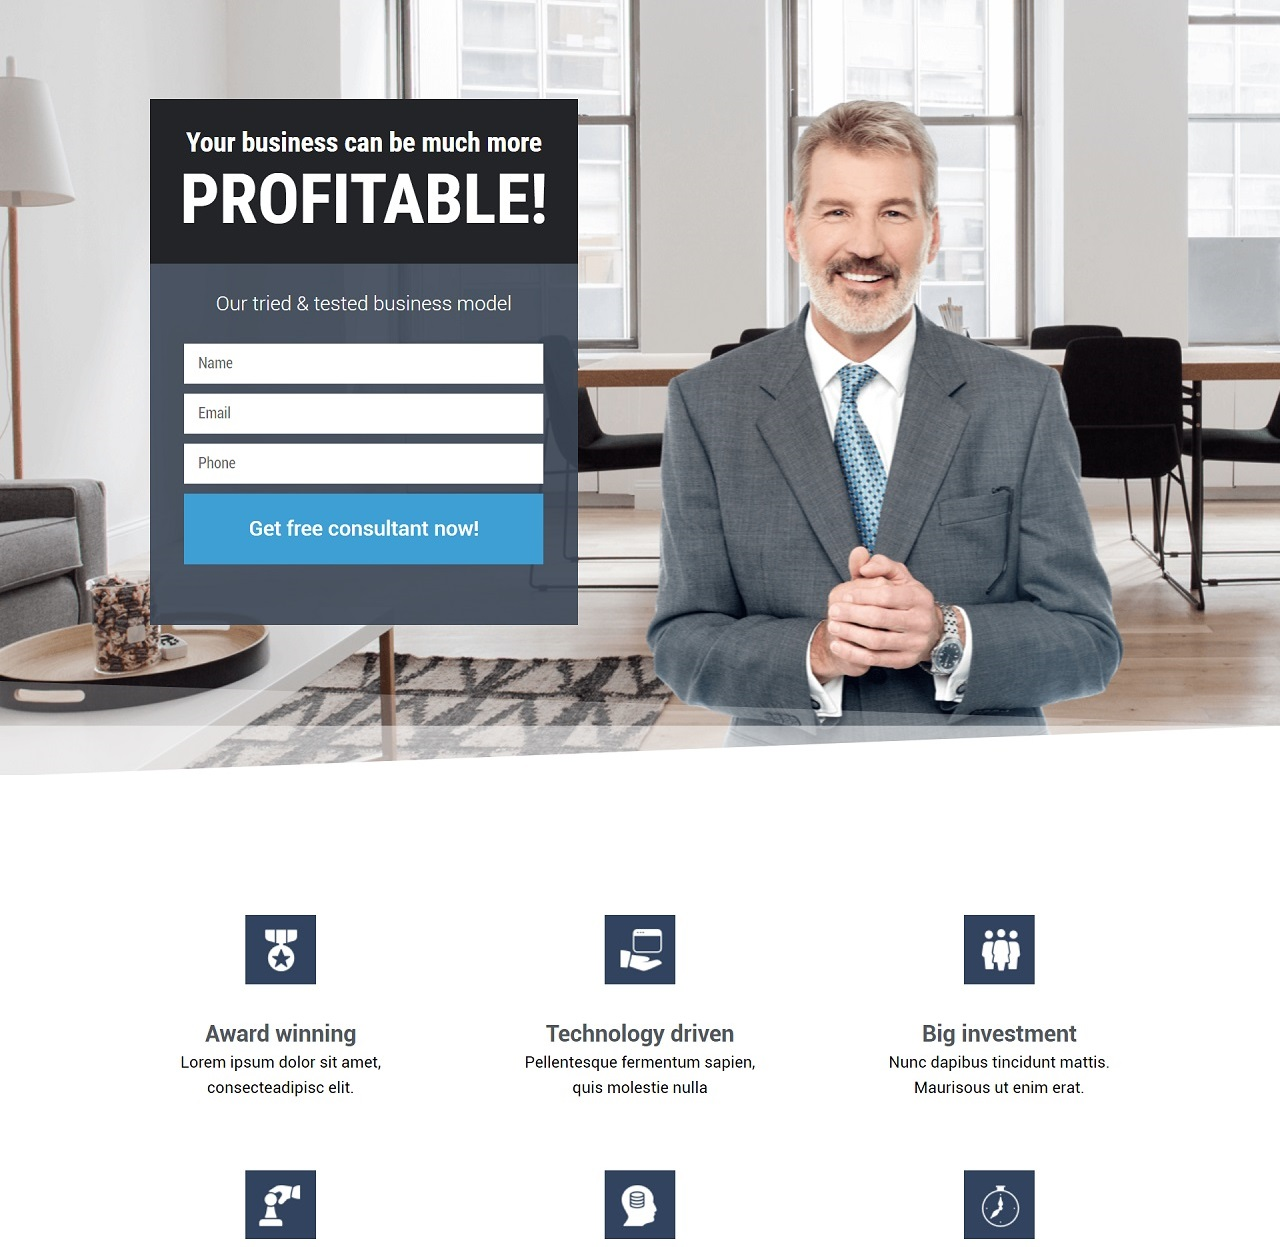 Business Consultant Landing Page Design